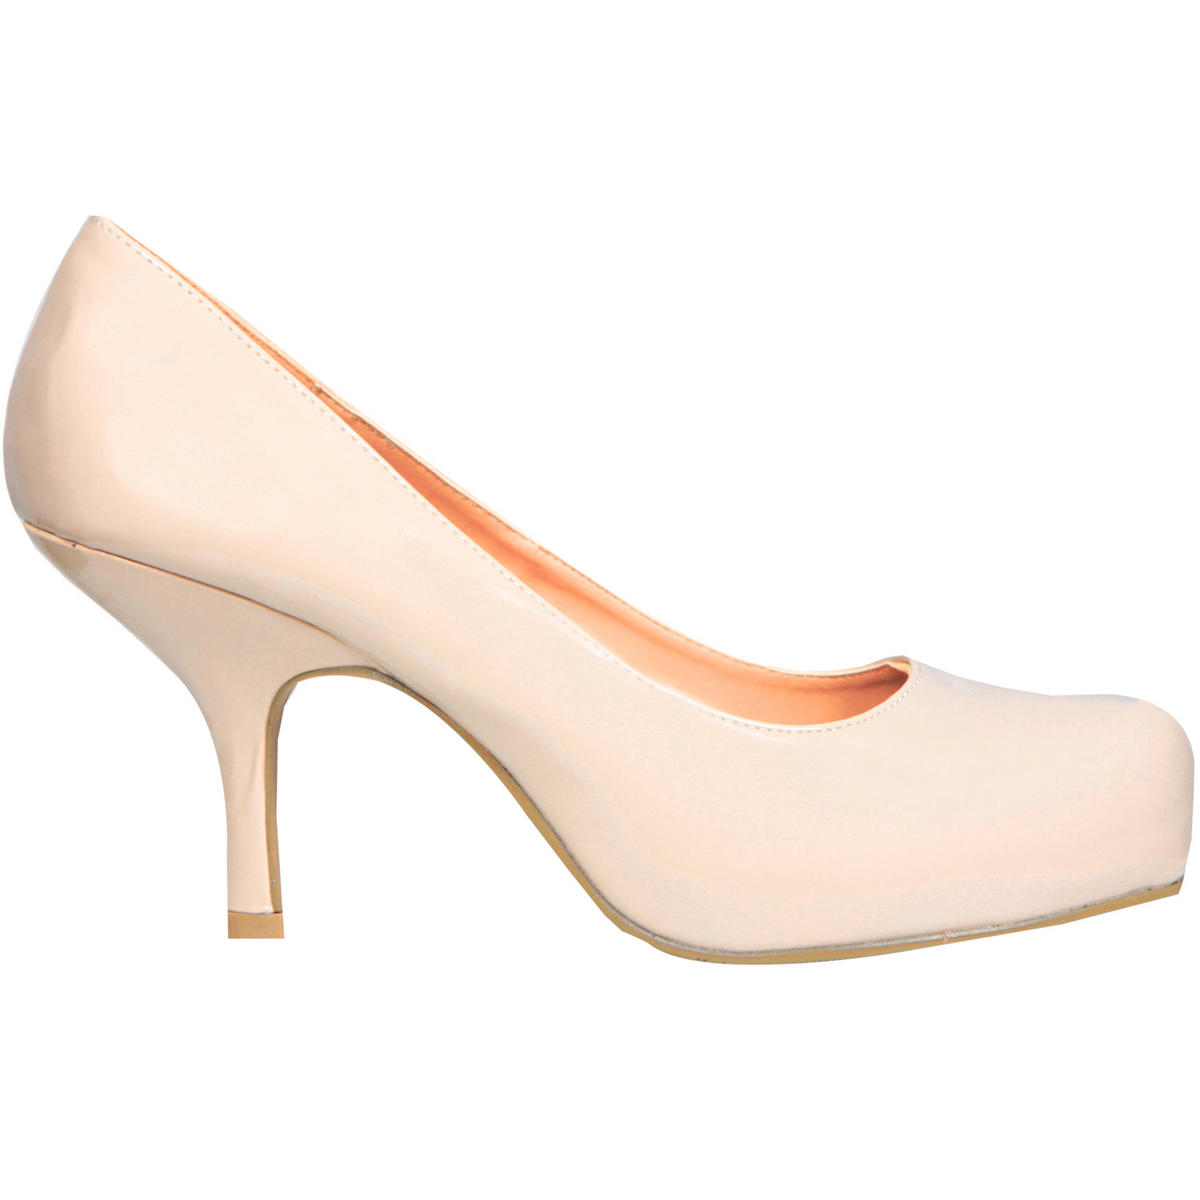 SIZE 4 ONLY Nude Patent Kitten Heel Shoe Preview